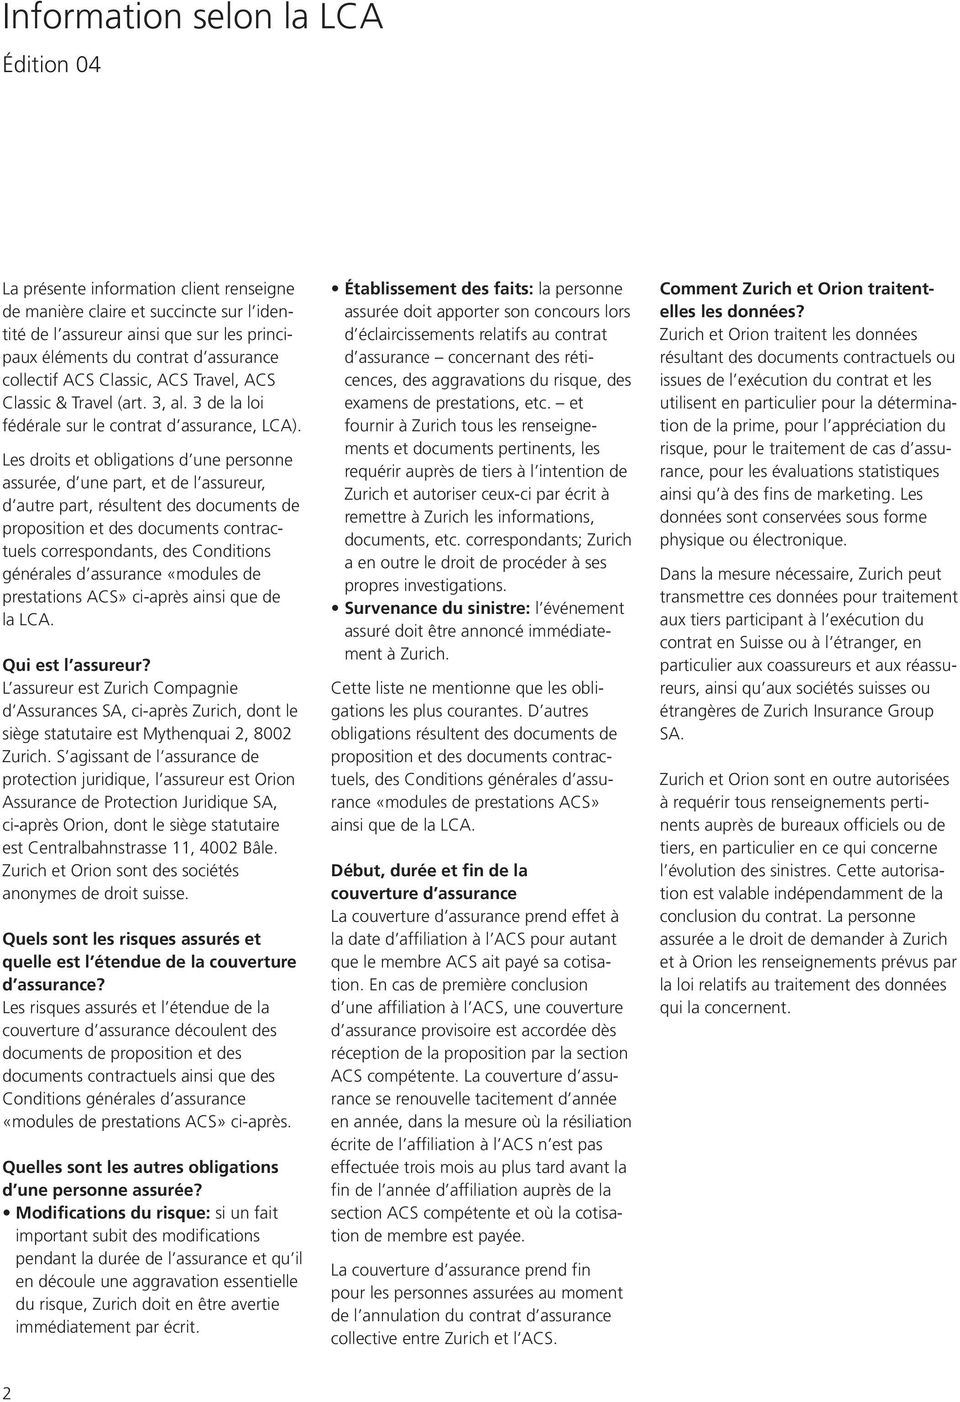 Les droits et obligations d une personne assurée, d une part, et de l assureur, d autre part, résultent des documents de proposition et des documents contractuels correspondants, des Conditions